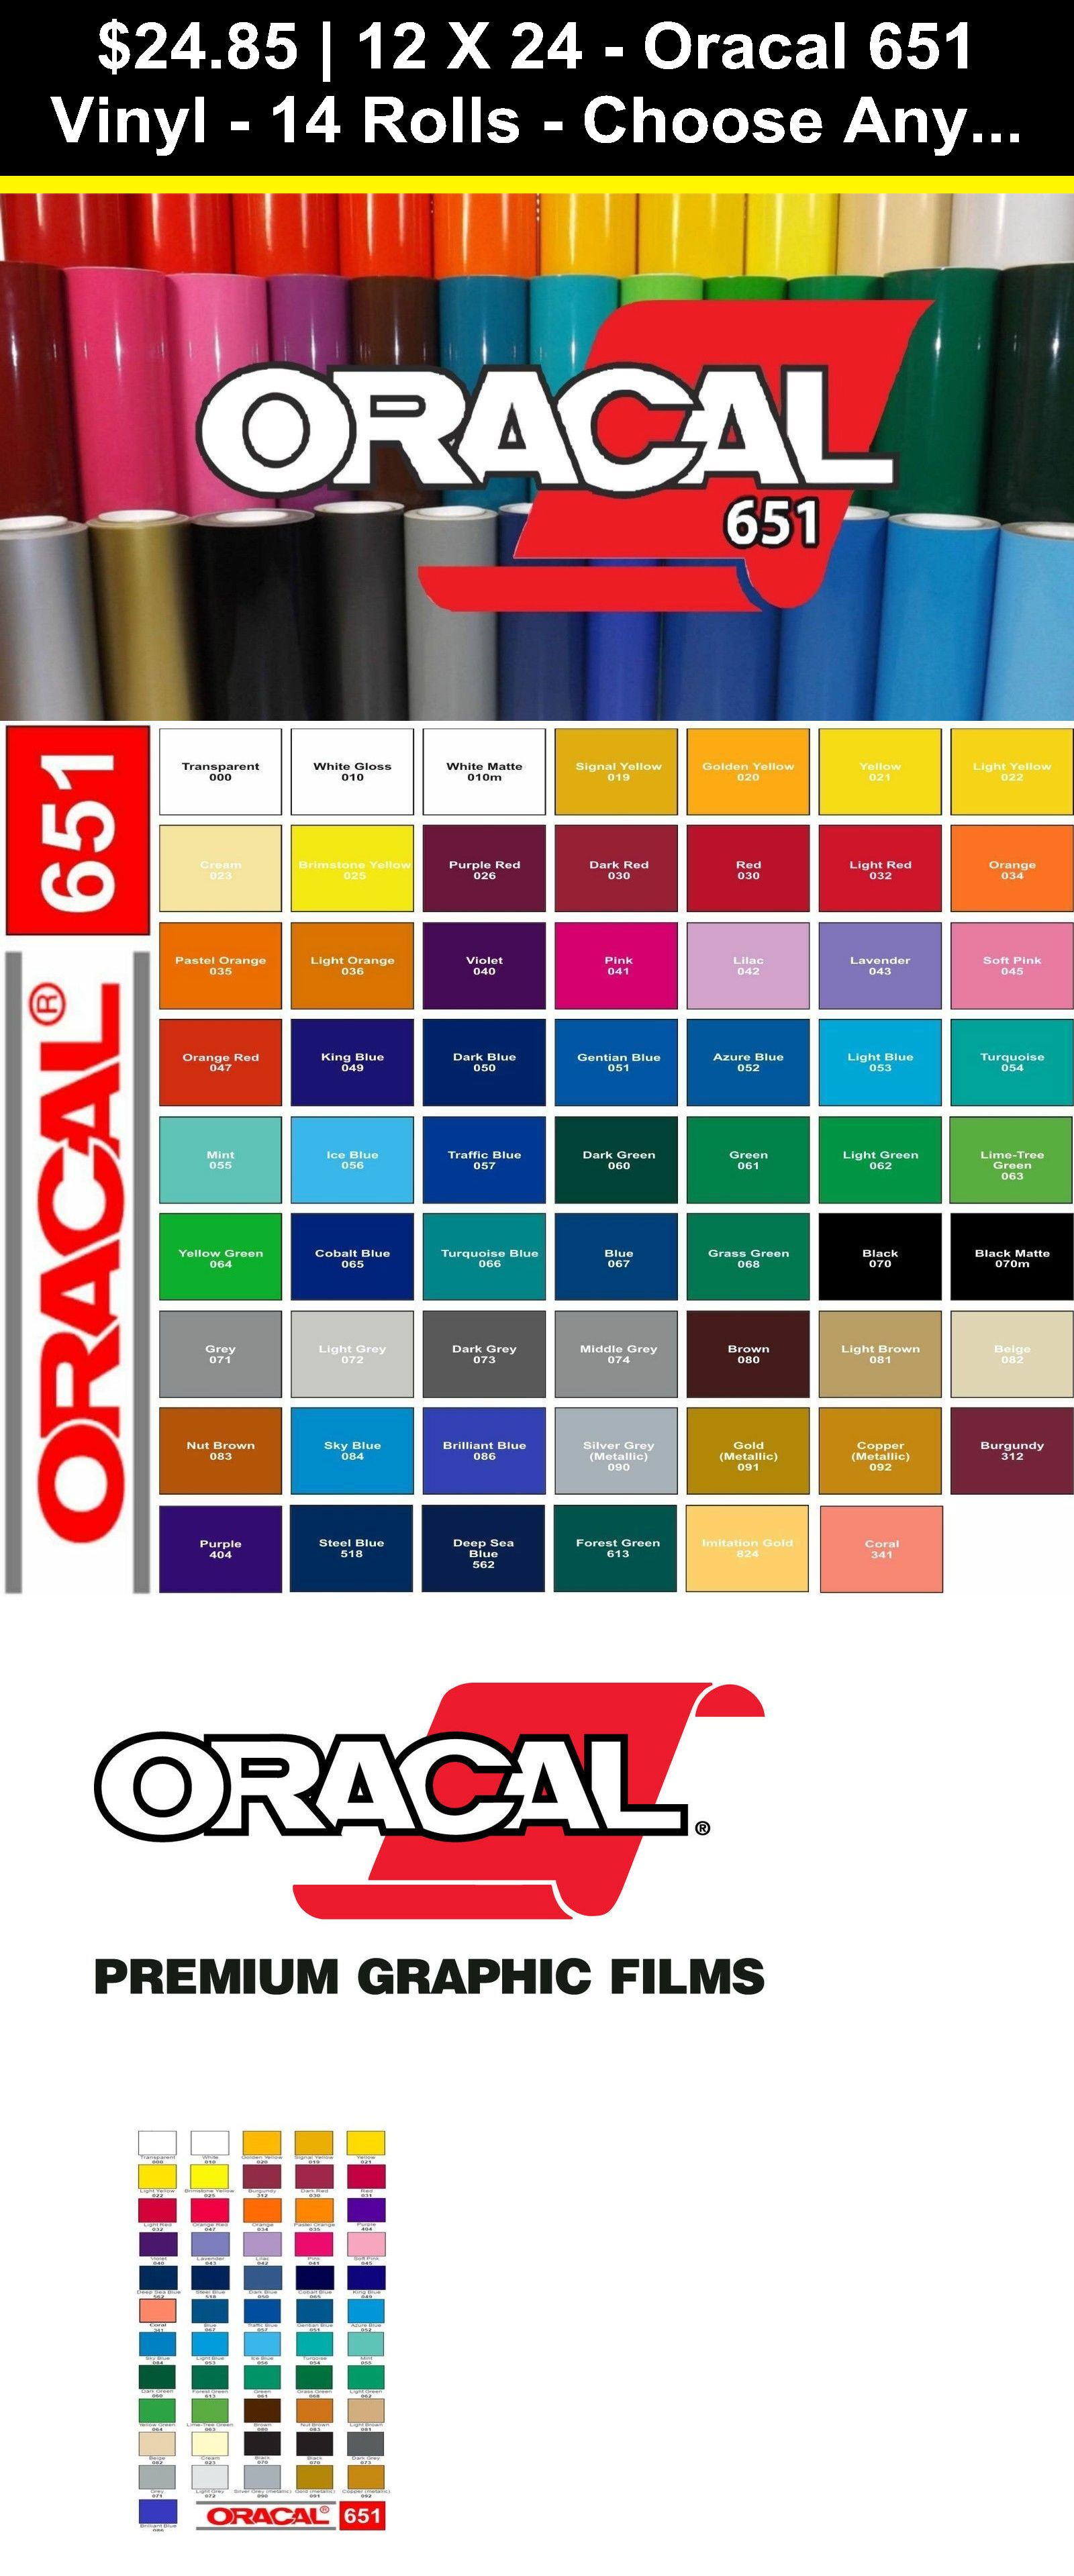 "Oracal 651 24/"" x 10yds matte black permanent outdoor sign vinyl for decals"